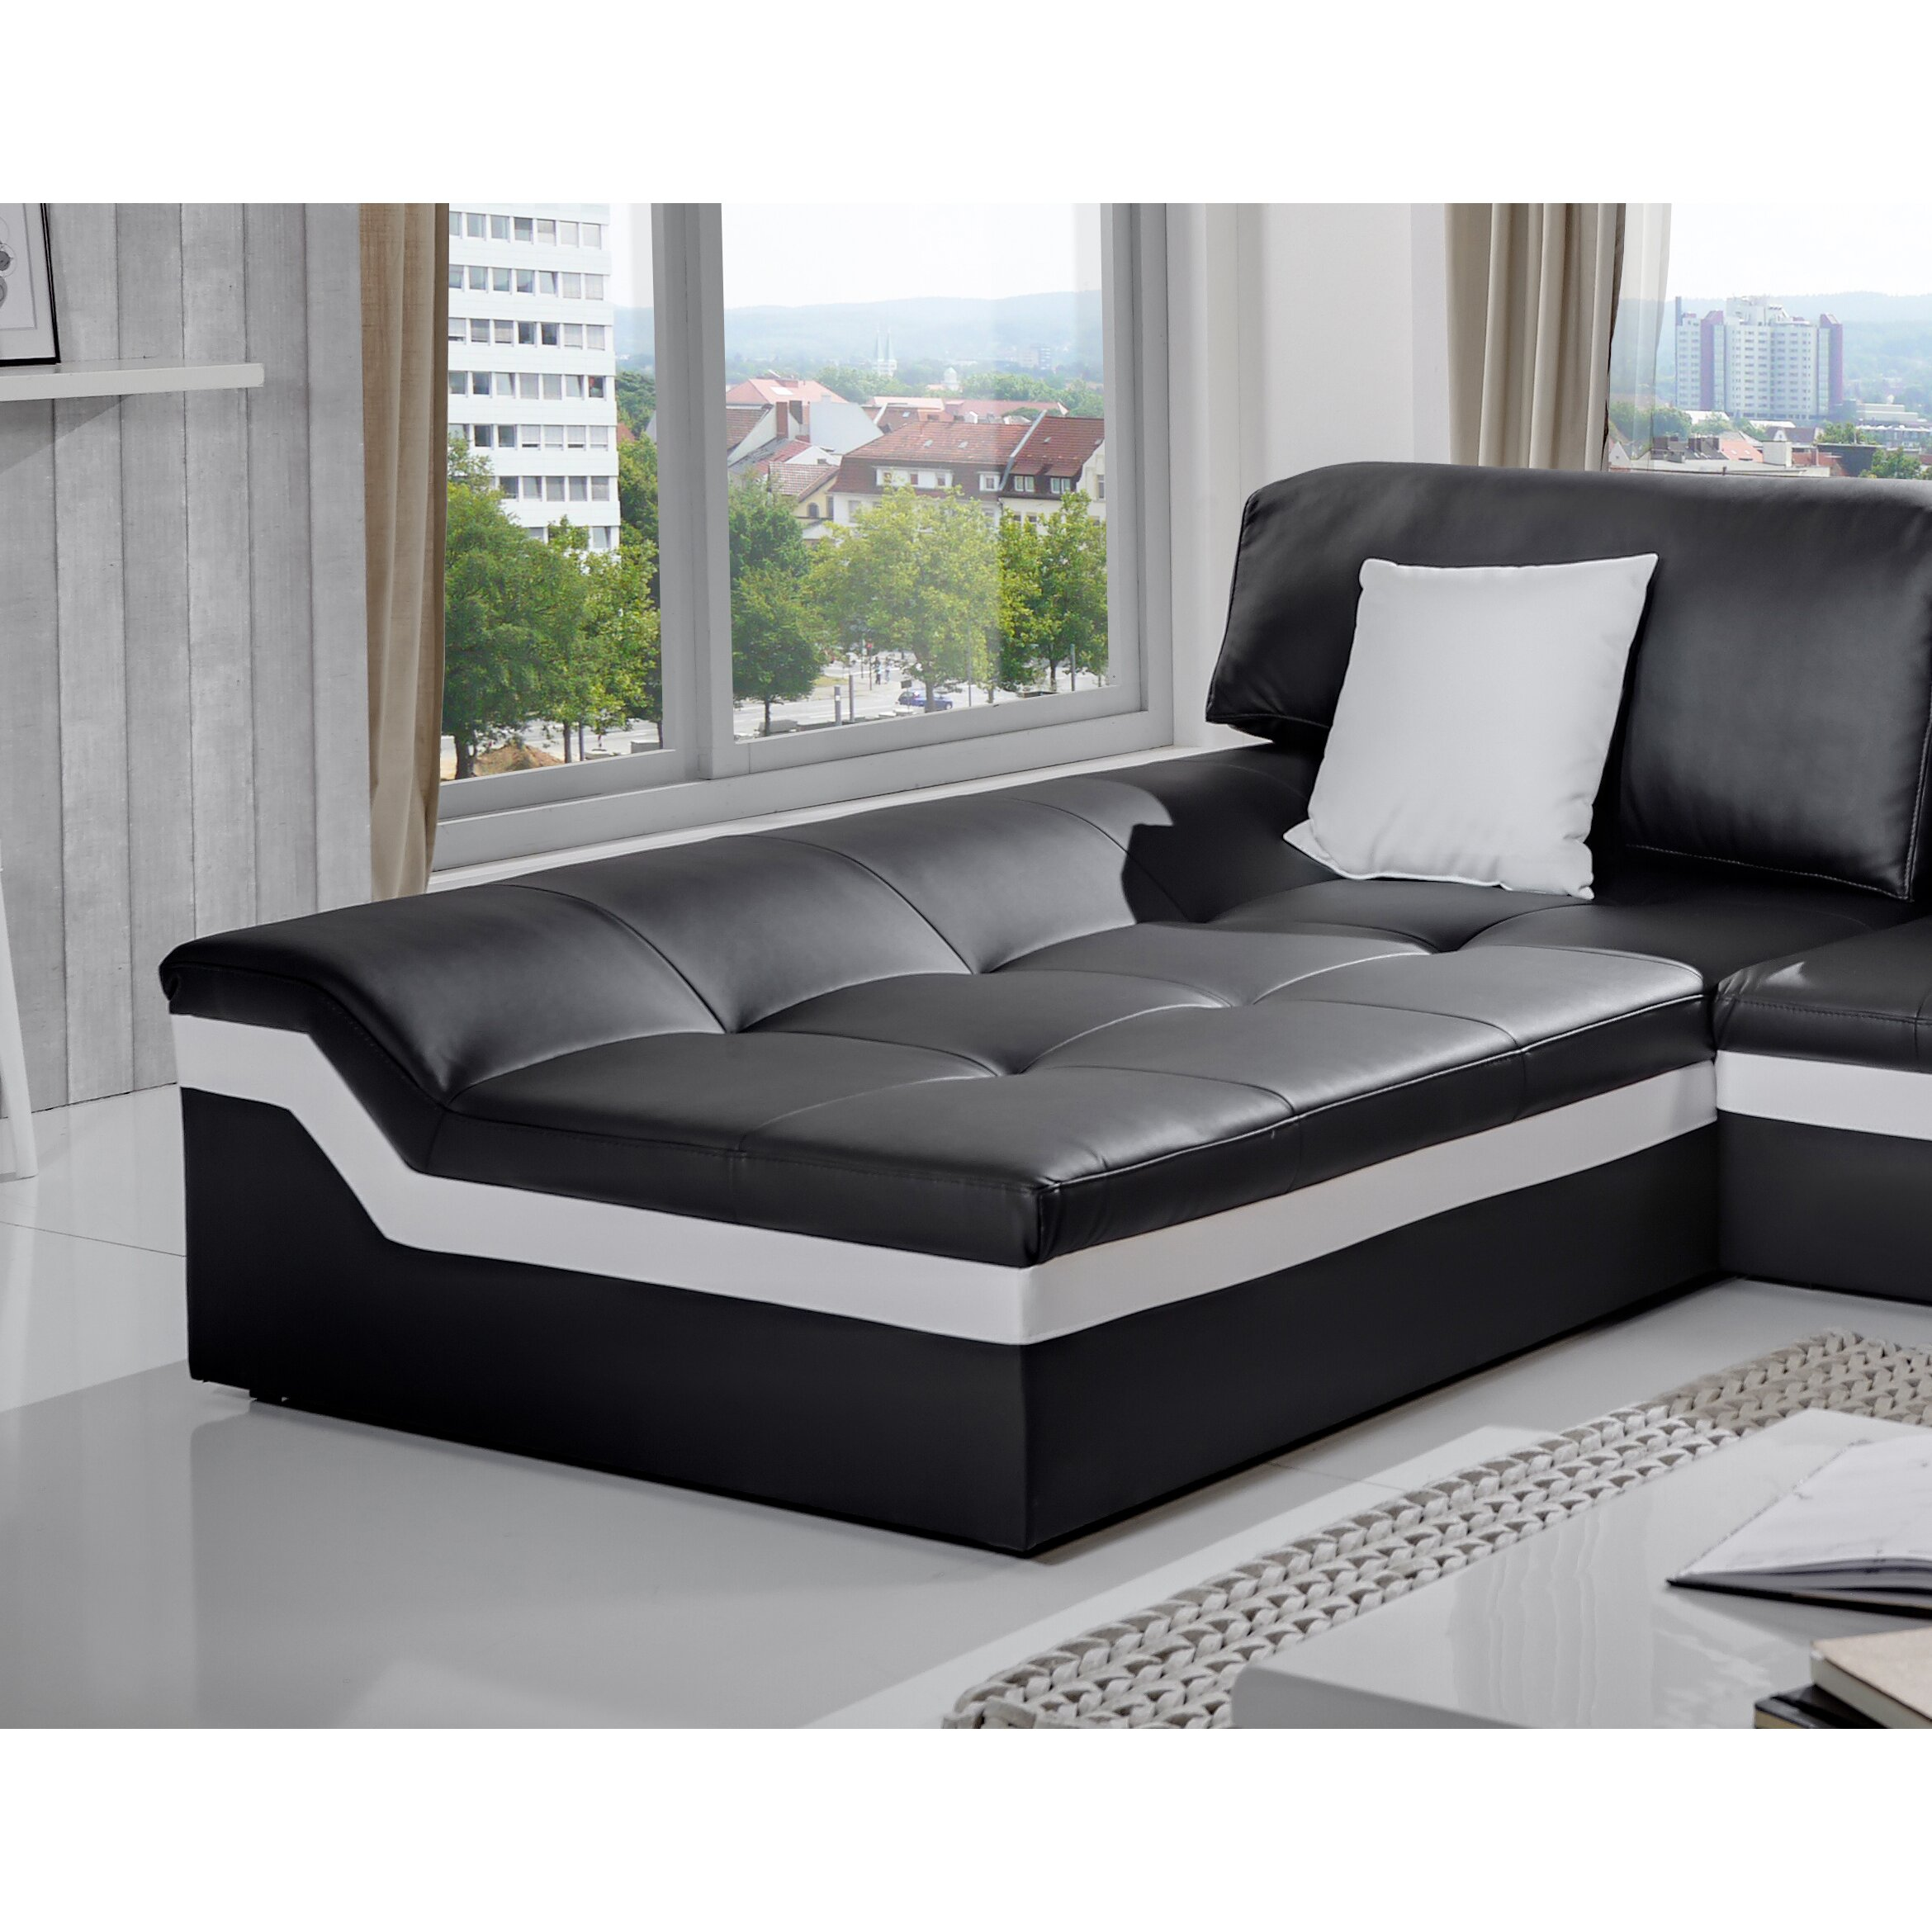 sam stil art m bel gmbh ecksofa mika. Black Bedroom Furniture Sets. Home Design Ideas